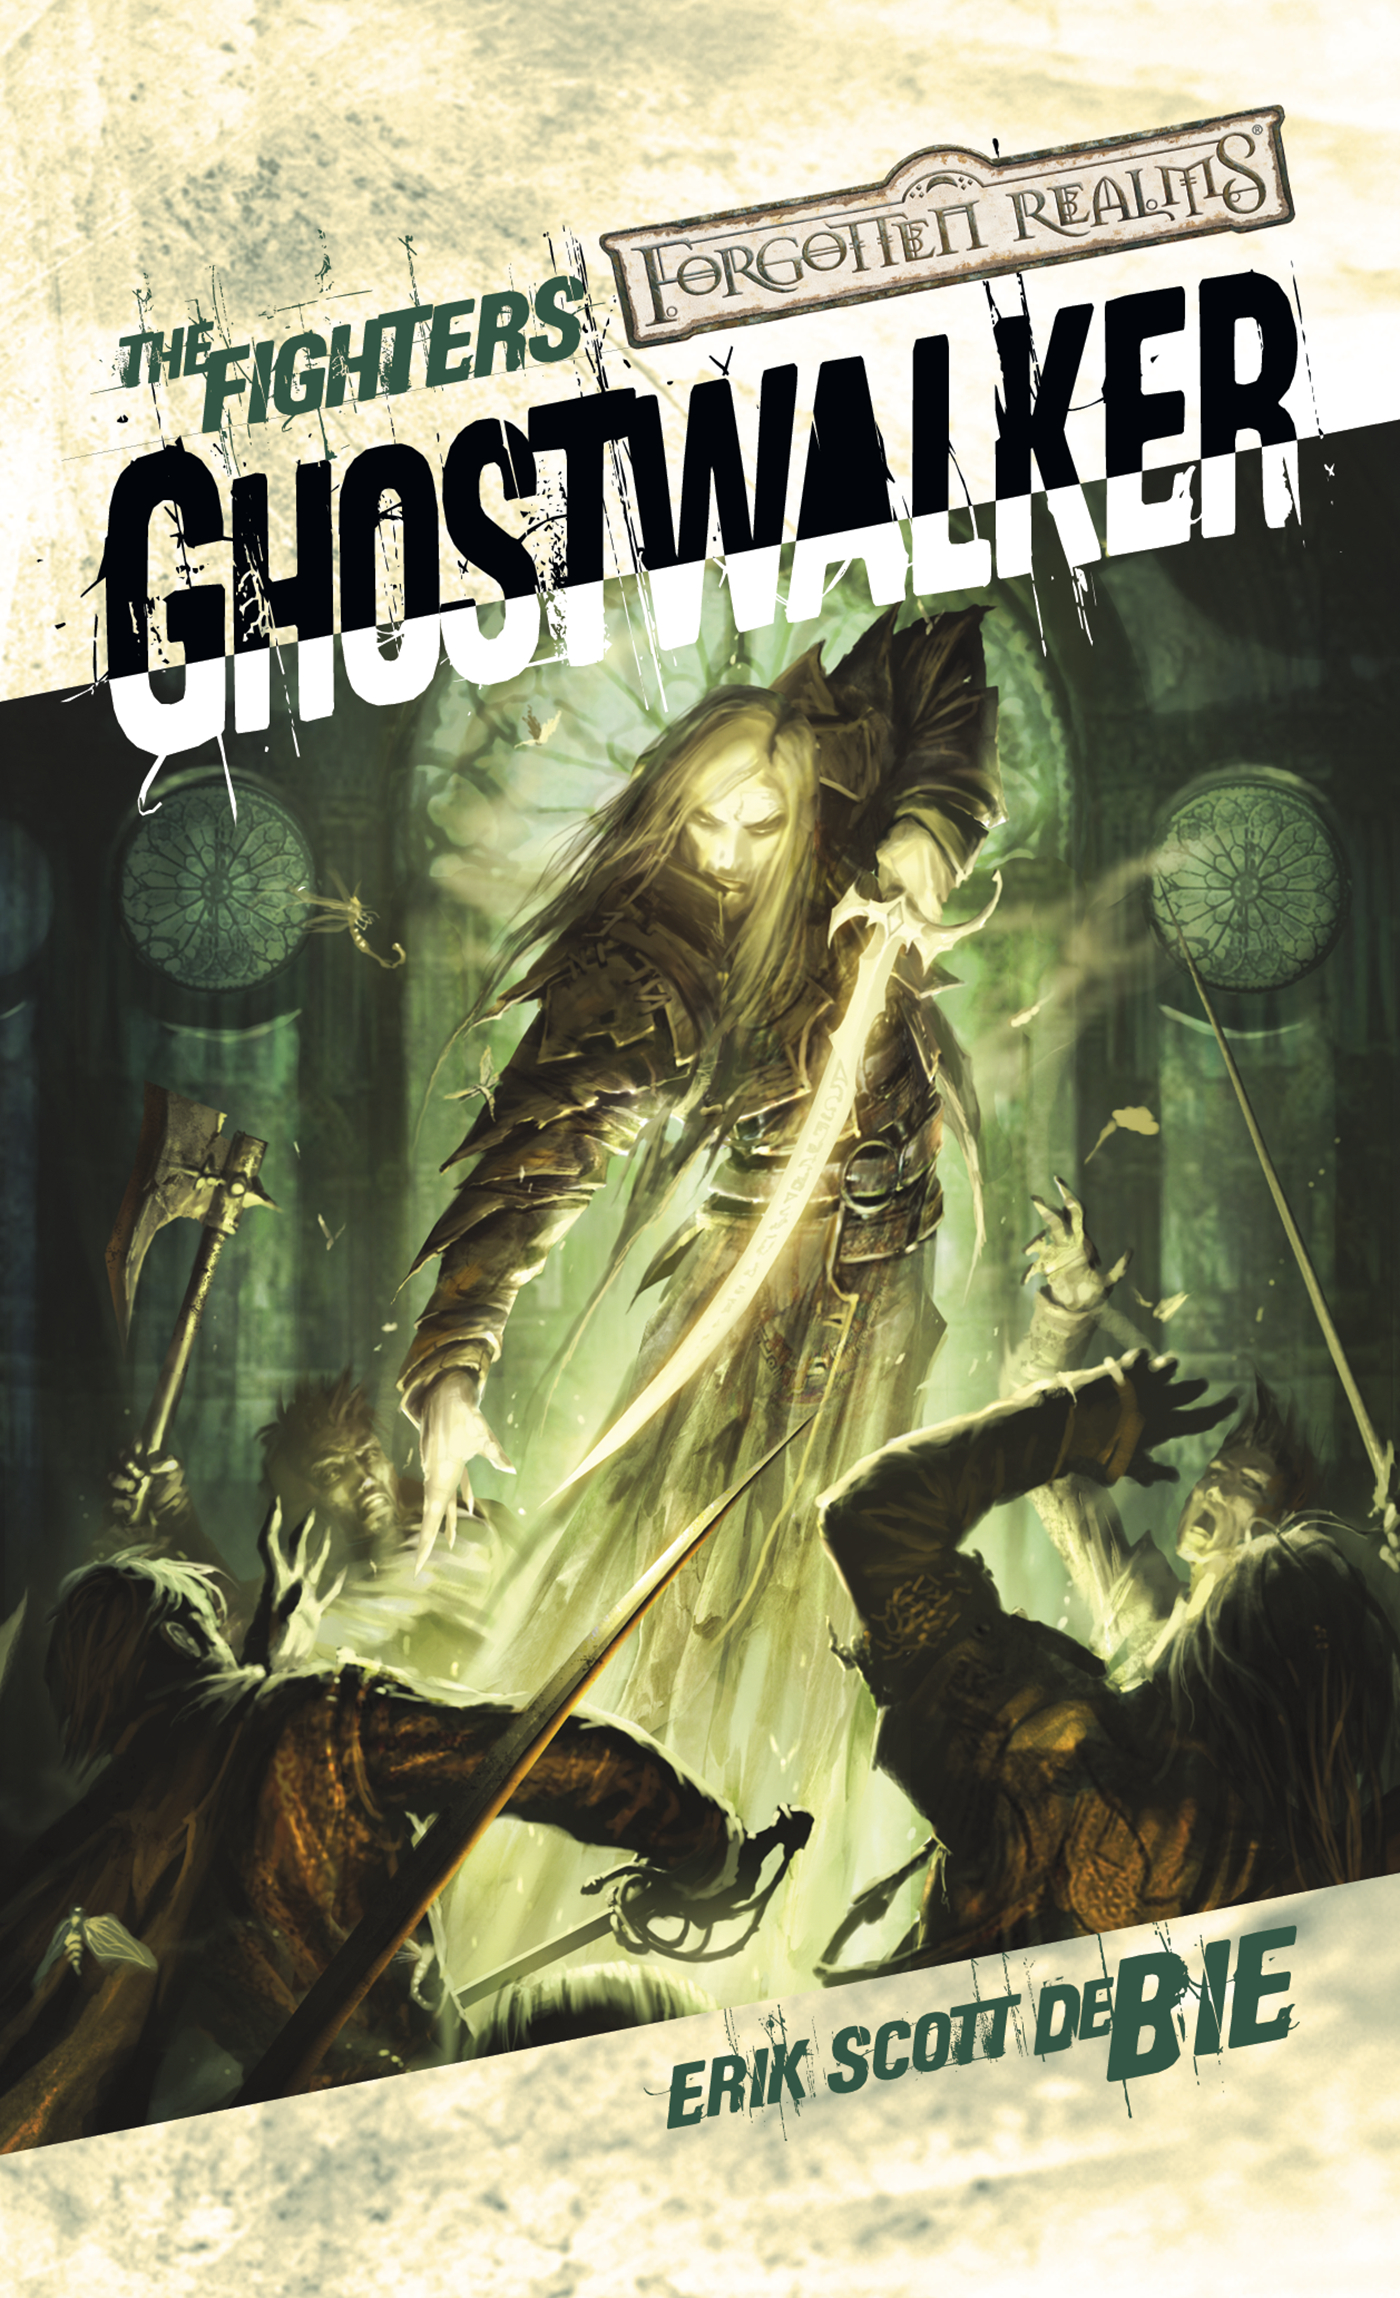 Ghostwalker (novel)